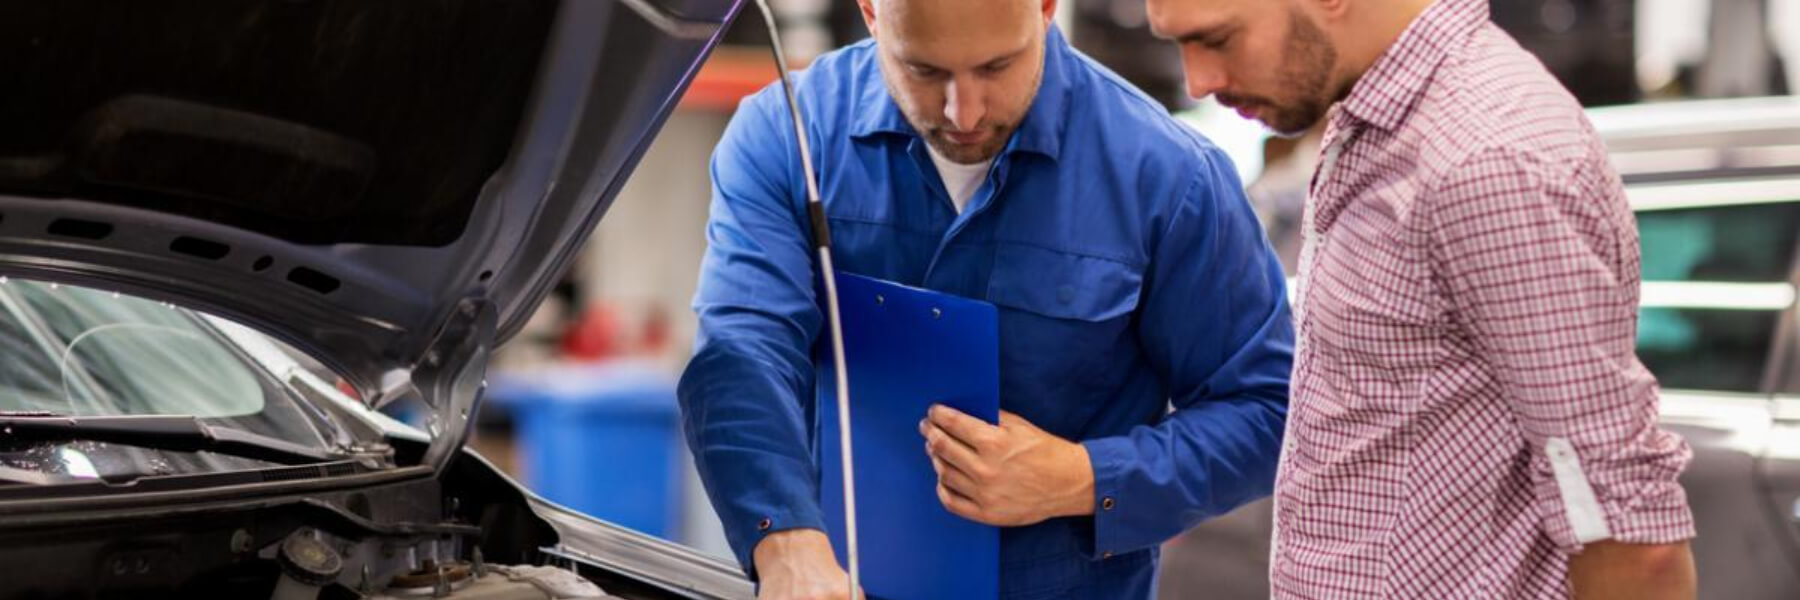 independent auto mechanic with customer